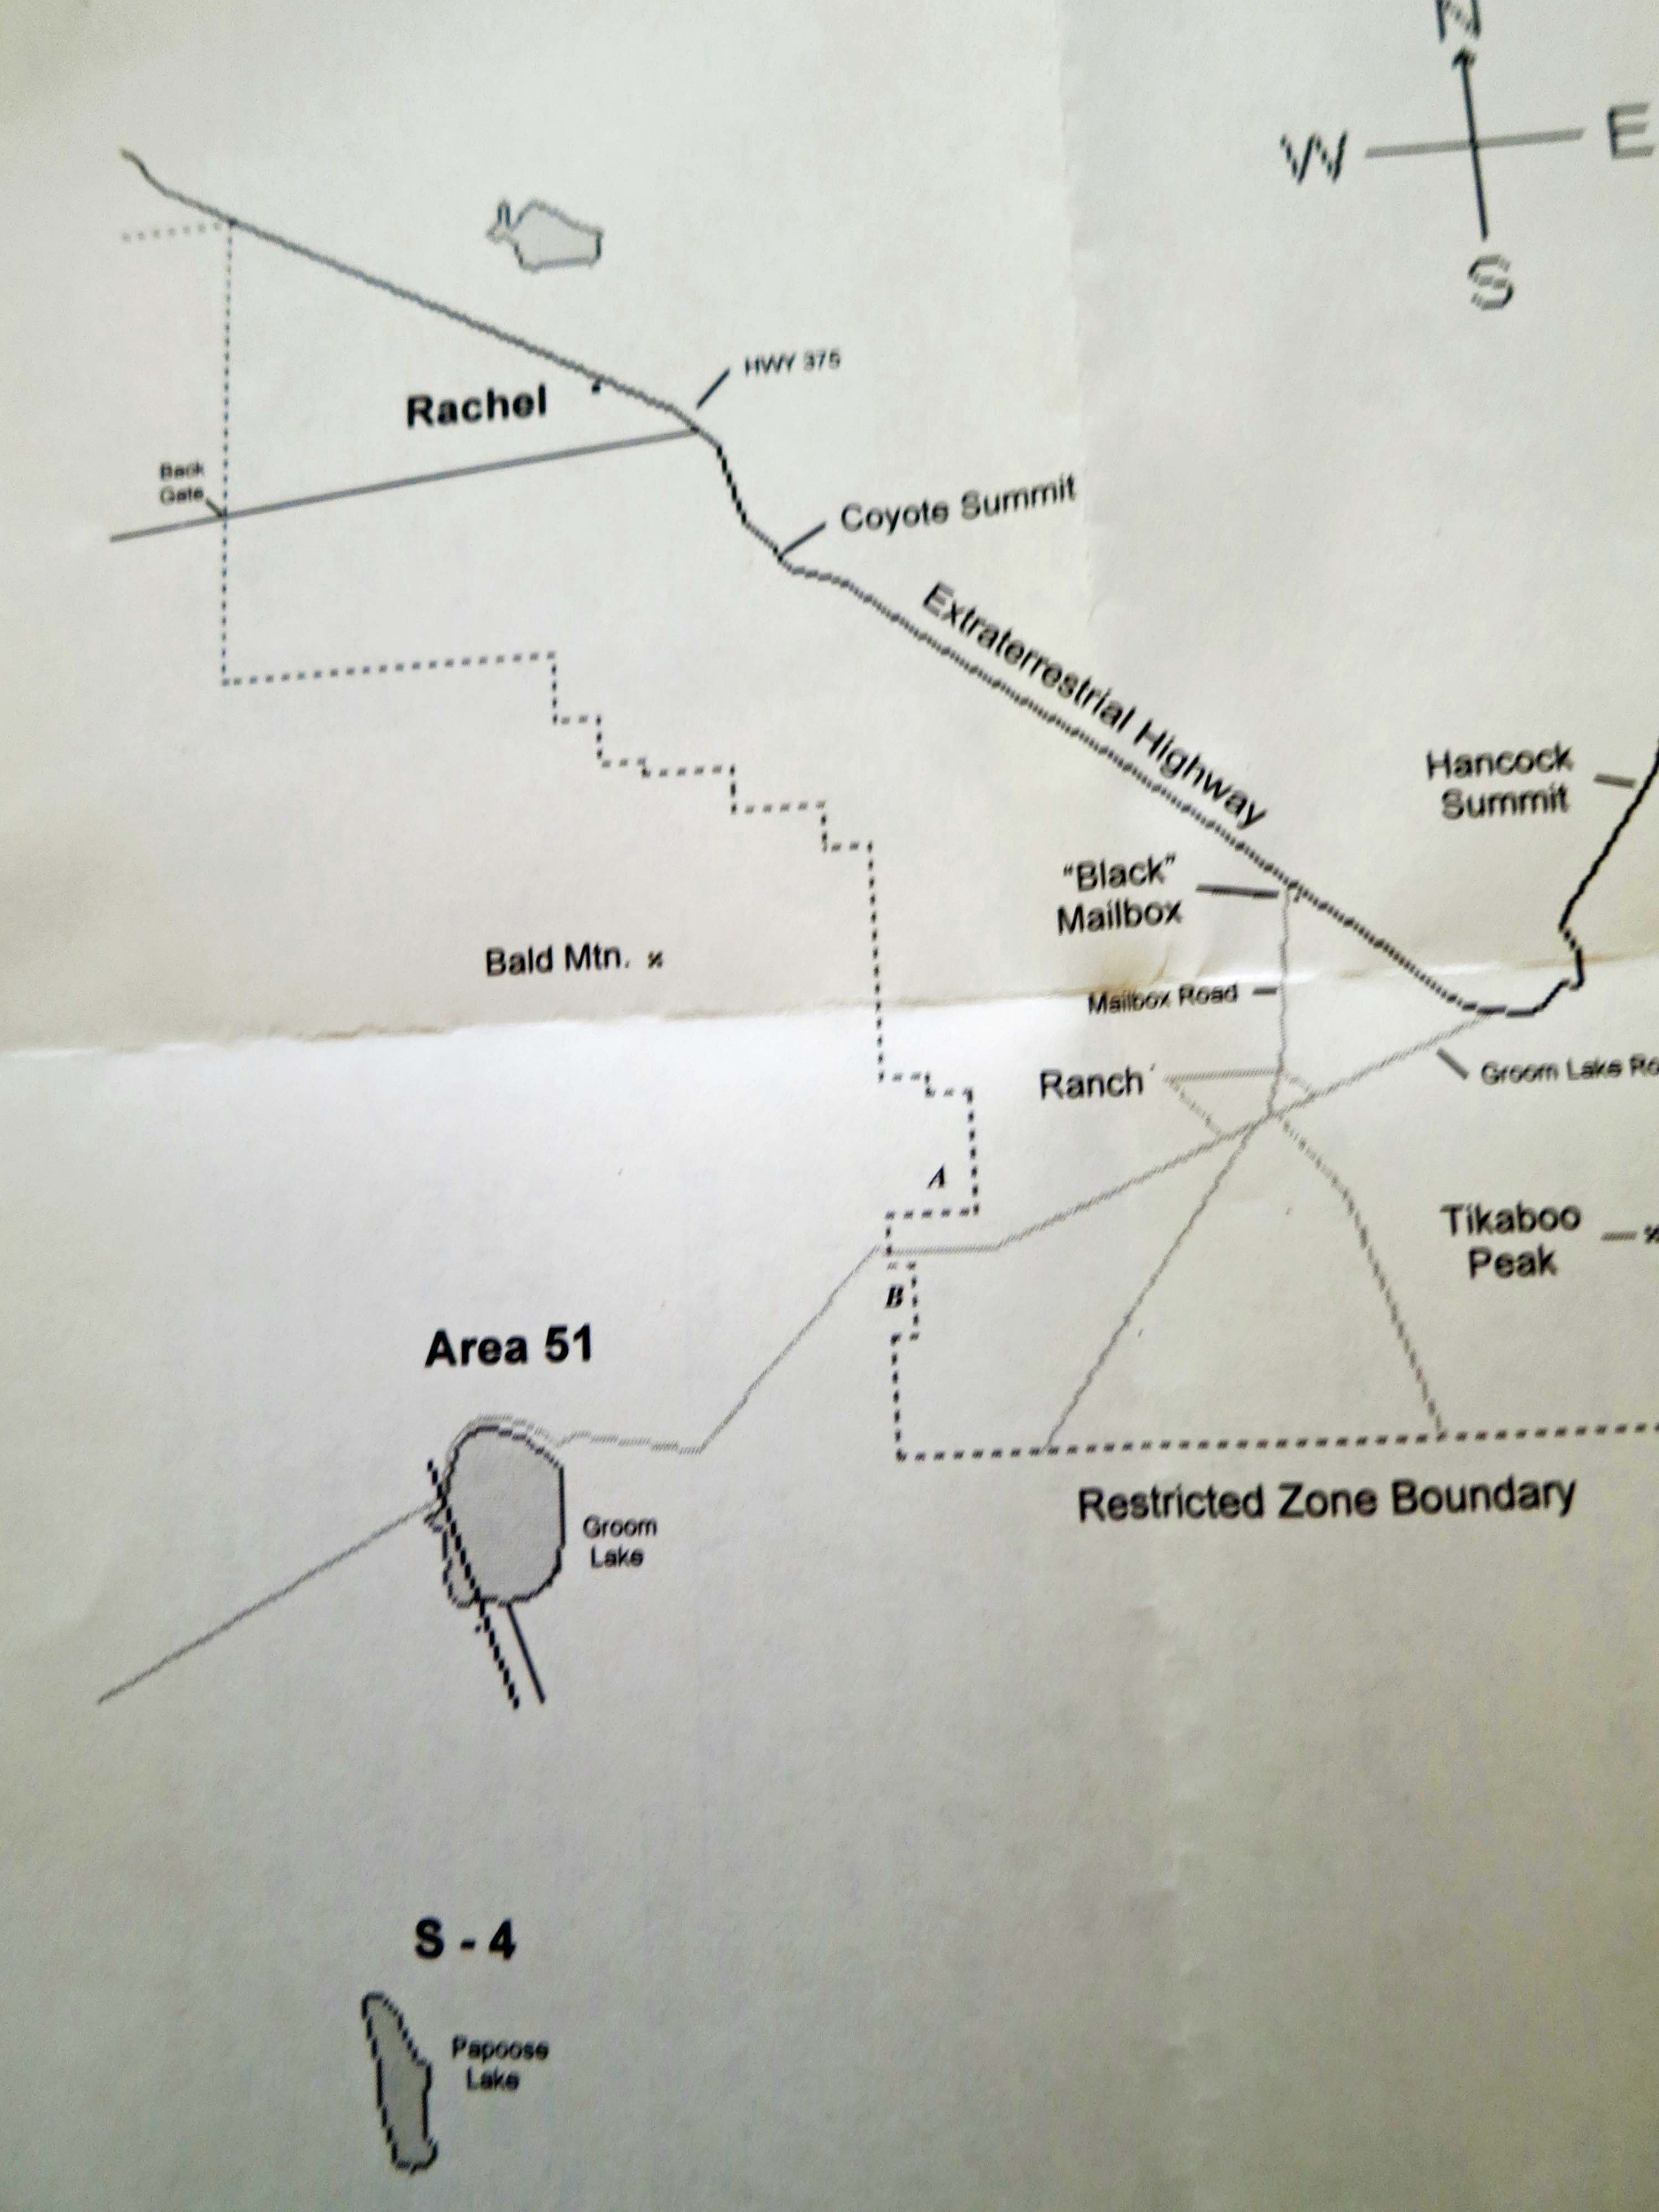 Map showing Rachel, Area 51, and roads. We followed the road next to Rachel that led to the back gate. The main part of Area 51 is located at Groom Lake, located just below the Area 51 name.